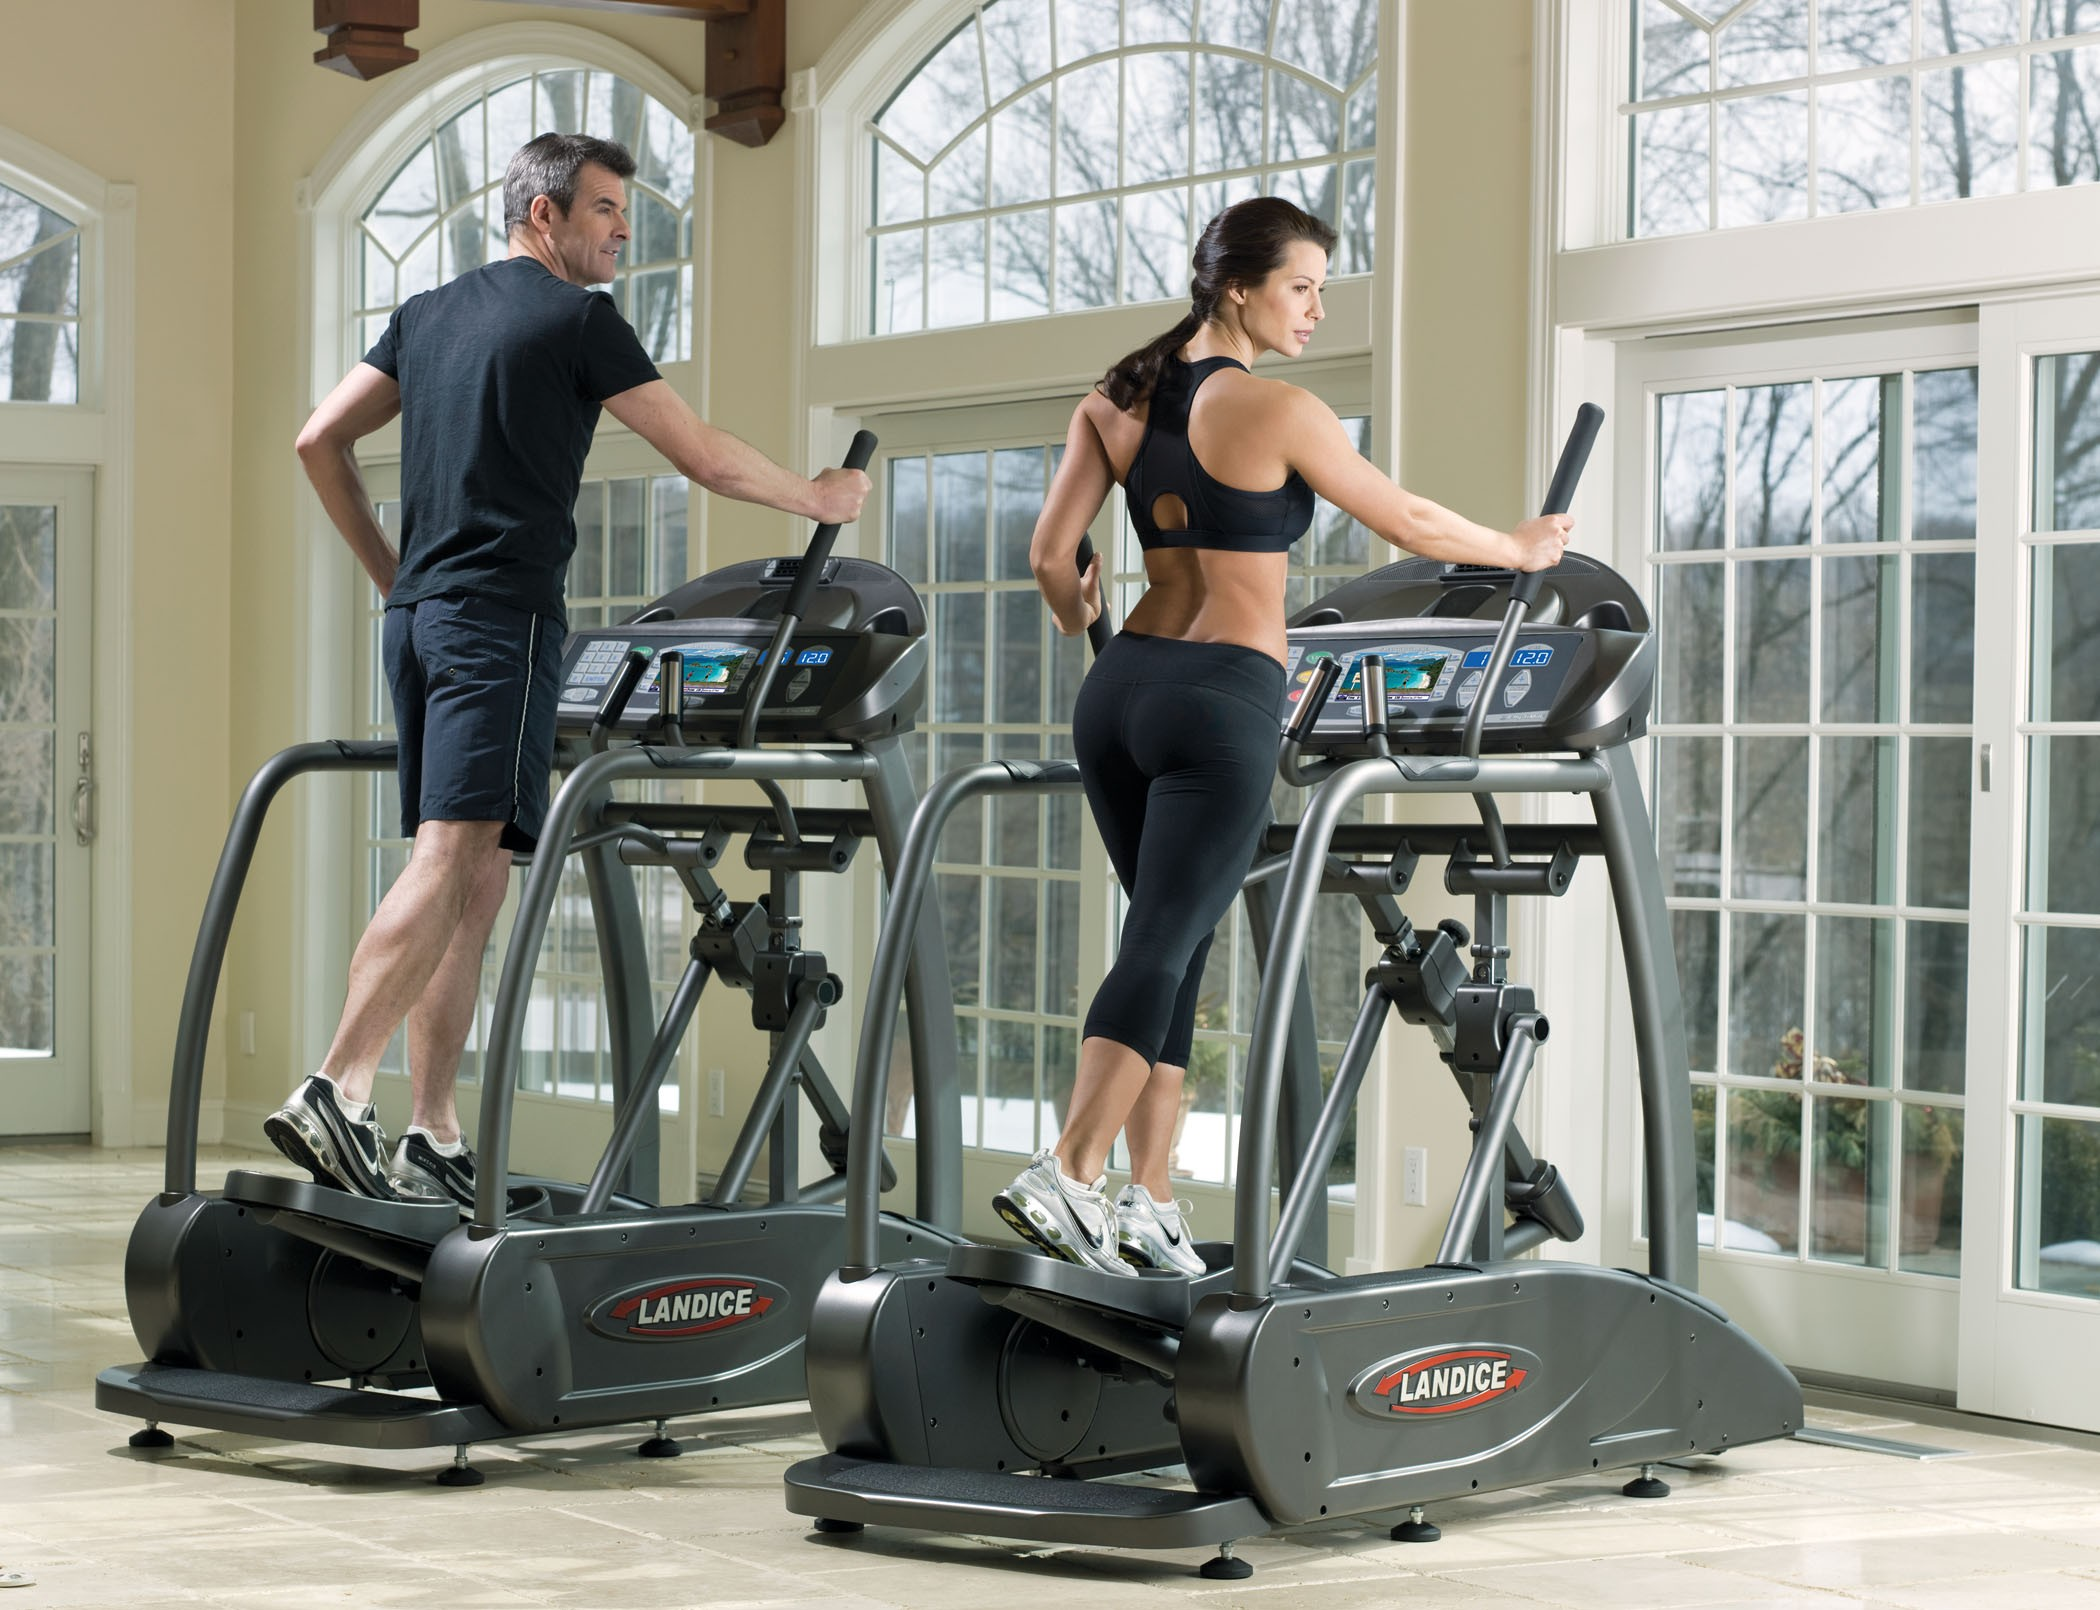 FITNESS    Gymcare has a vast range of fitness equipment brands part of its portfolio where this diversity allows Gymcare to cater to the needs of a wider clientele, with products for your Home or Health Clubs.  LANDICE, HOIST, HAMPTON